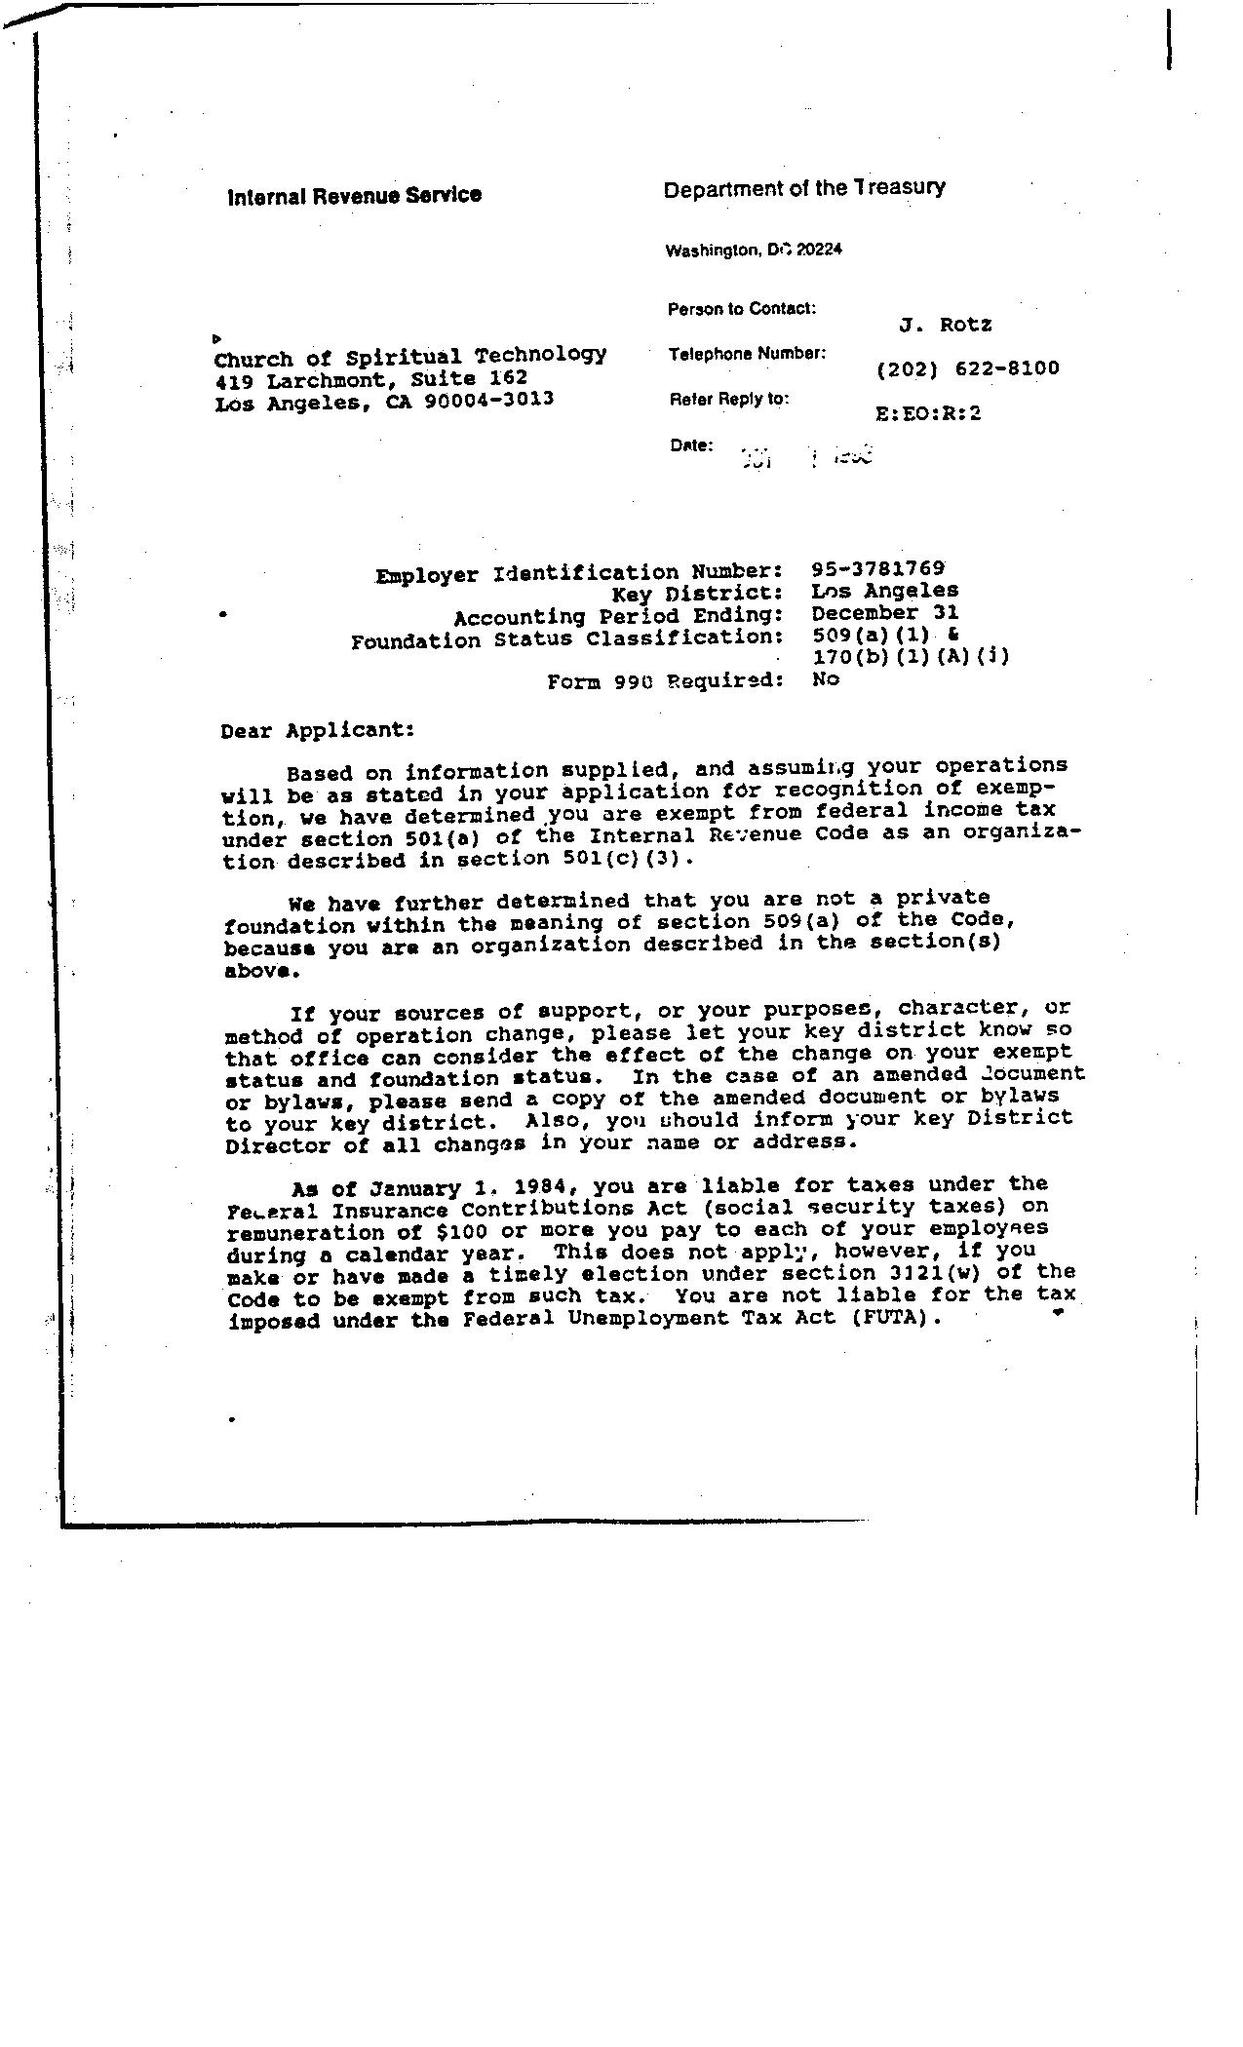 File:IRS-Recognition-CST.pdf - Wikimedia Commons